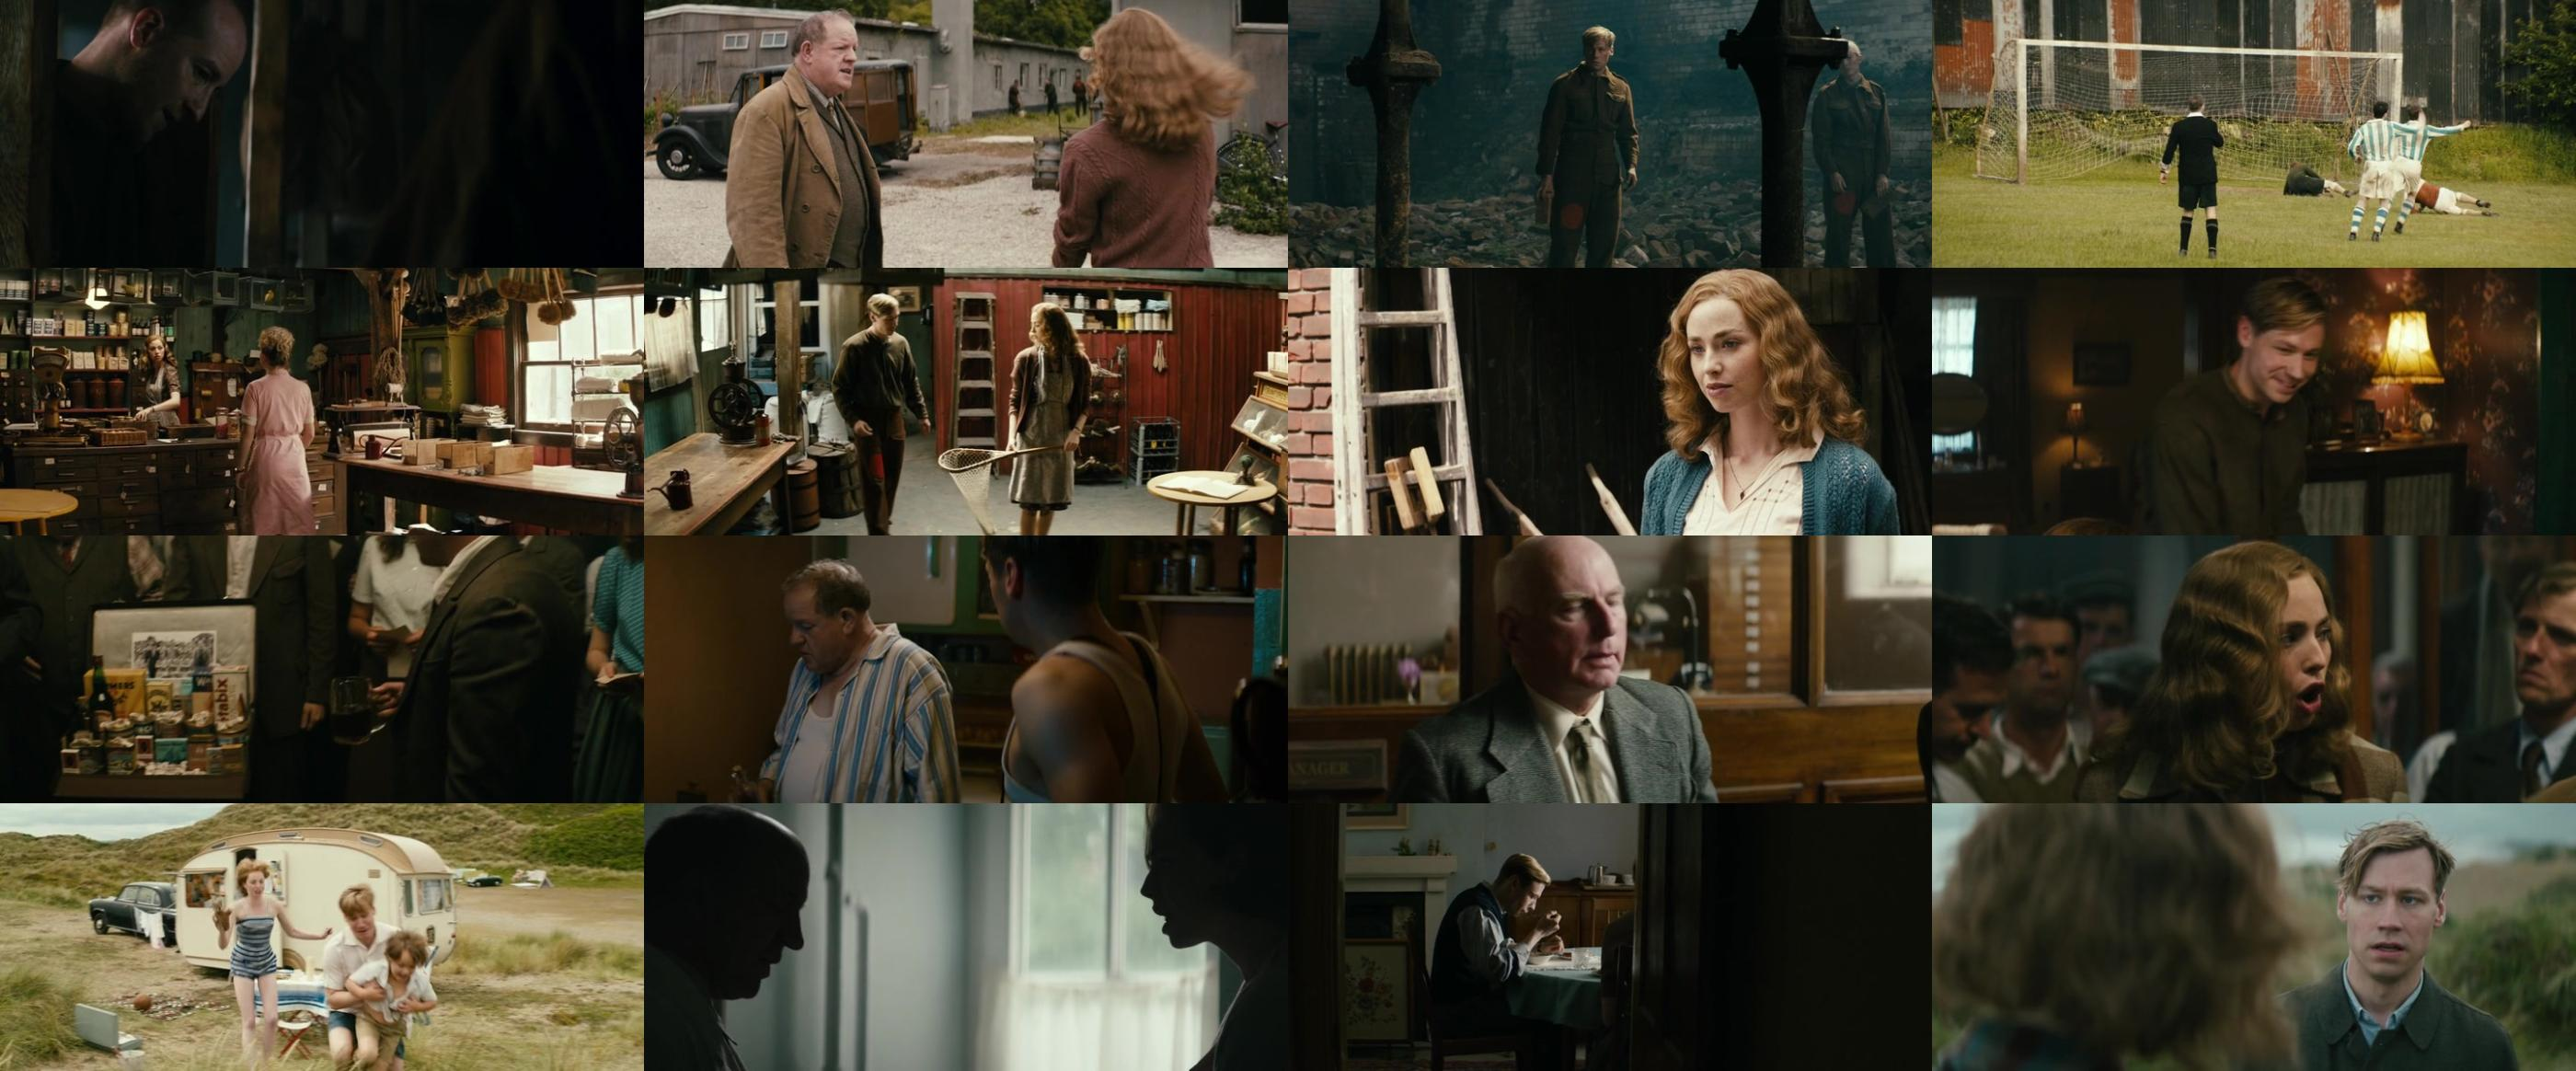 The Keeper 2018 WEB DL x264 FGT